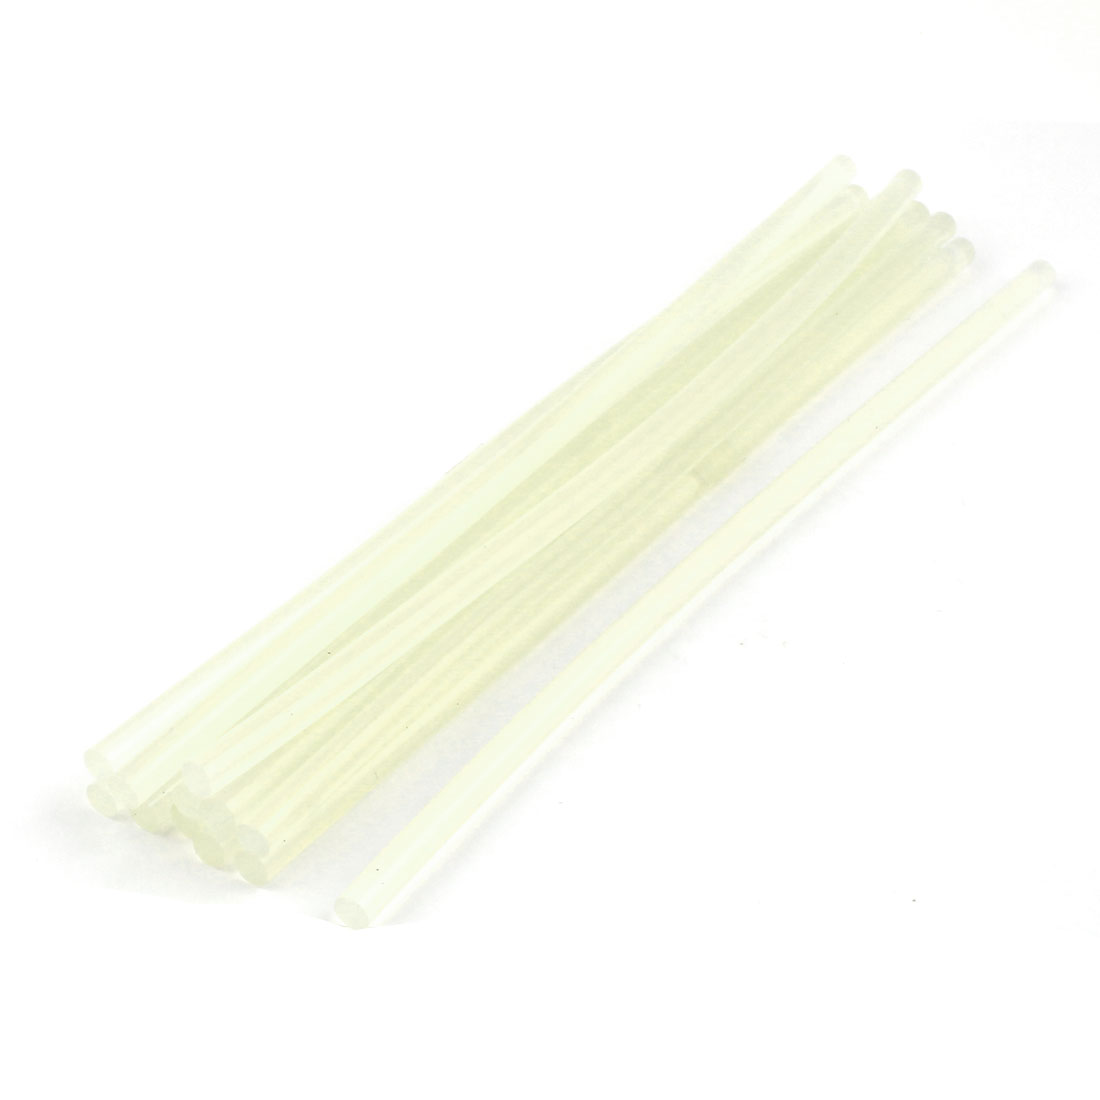 12 Pcs 7mm Diameter Soldering Iron Hot Melt Glue Stick 190mm Length Clear White